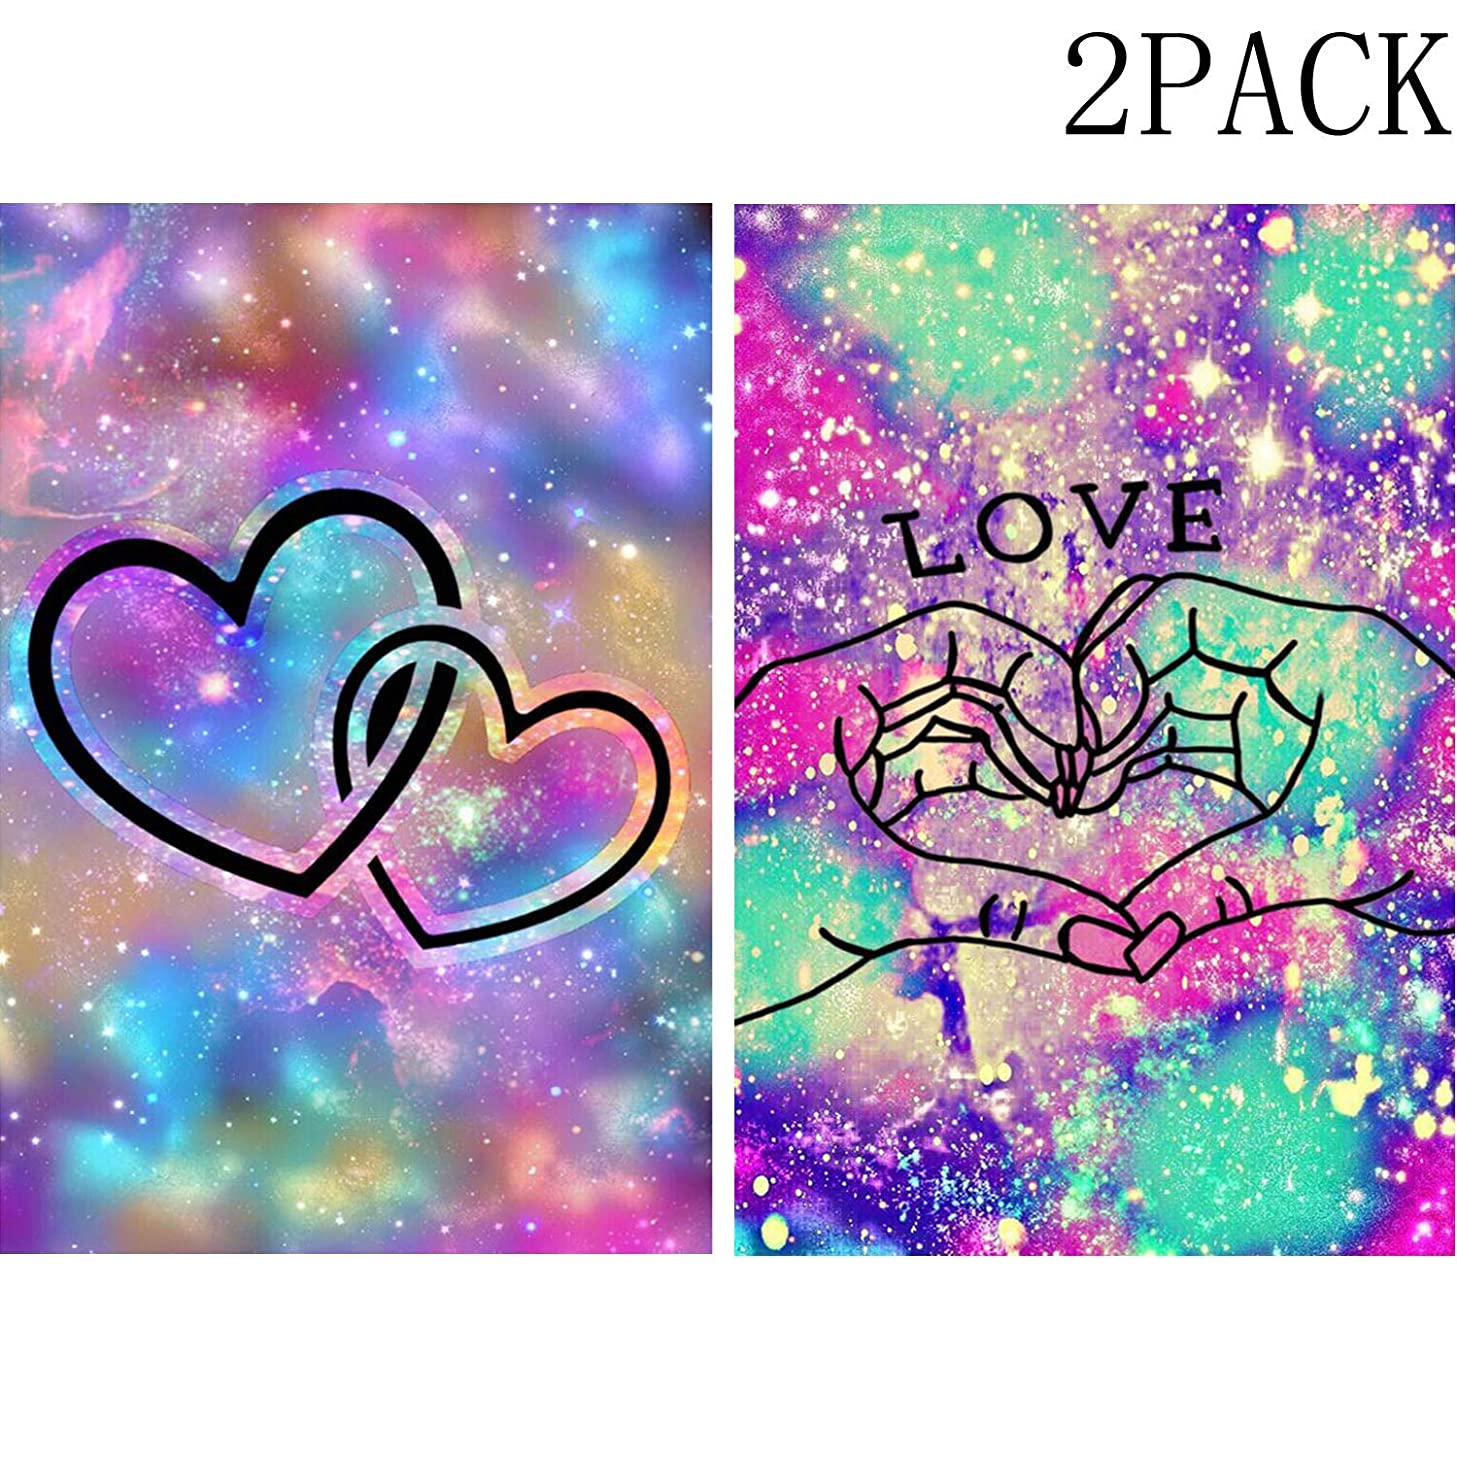 DIY 5D Diamond Paint by Number for Adults Kit,Starry Sky Hands Finger More Than Heart Love+Two Hearts of Love Wedding Gift Diamond Embroidery Paintings for Home Wall Decor 2PACK (11.8X15.7in-W18+W31)